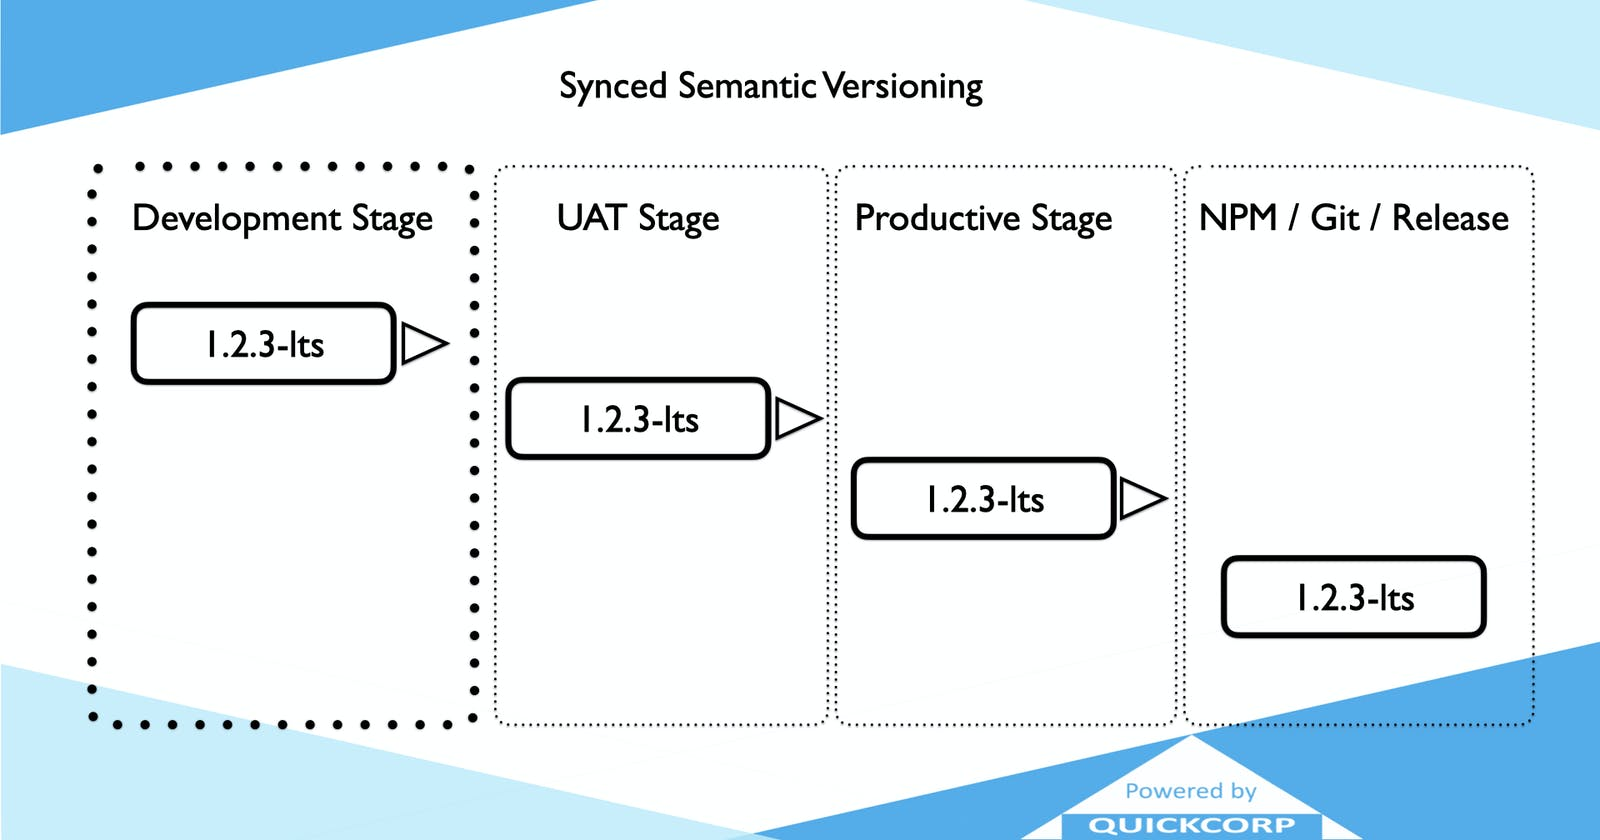 What is Synced Semantic Versioning?